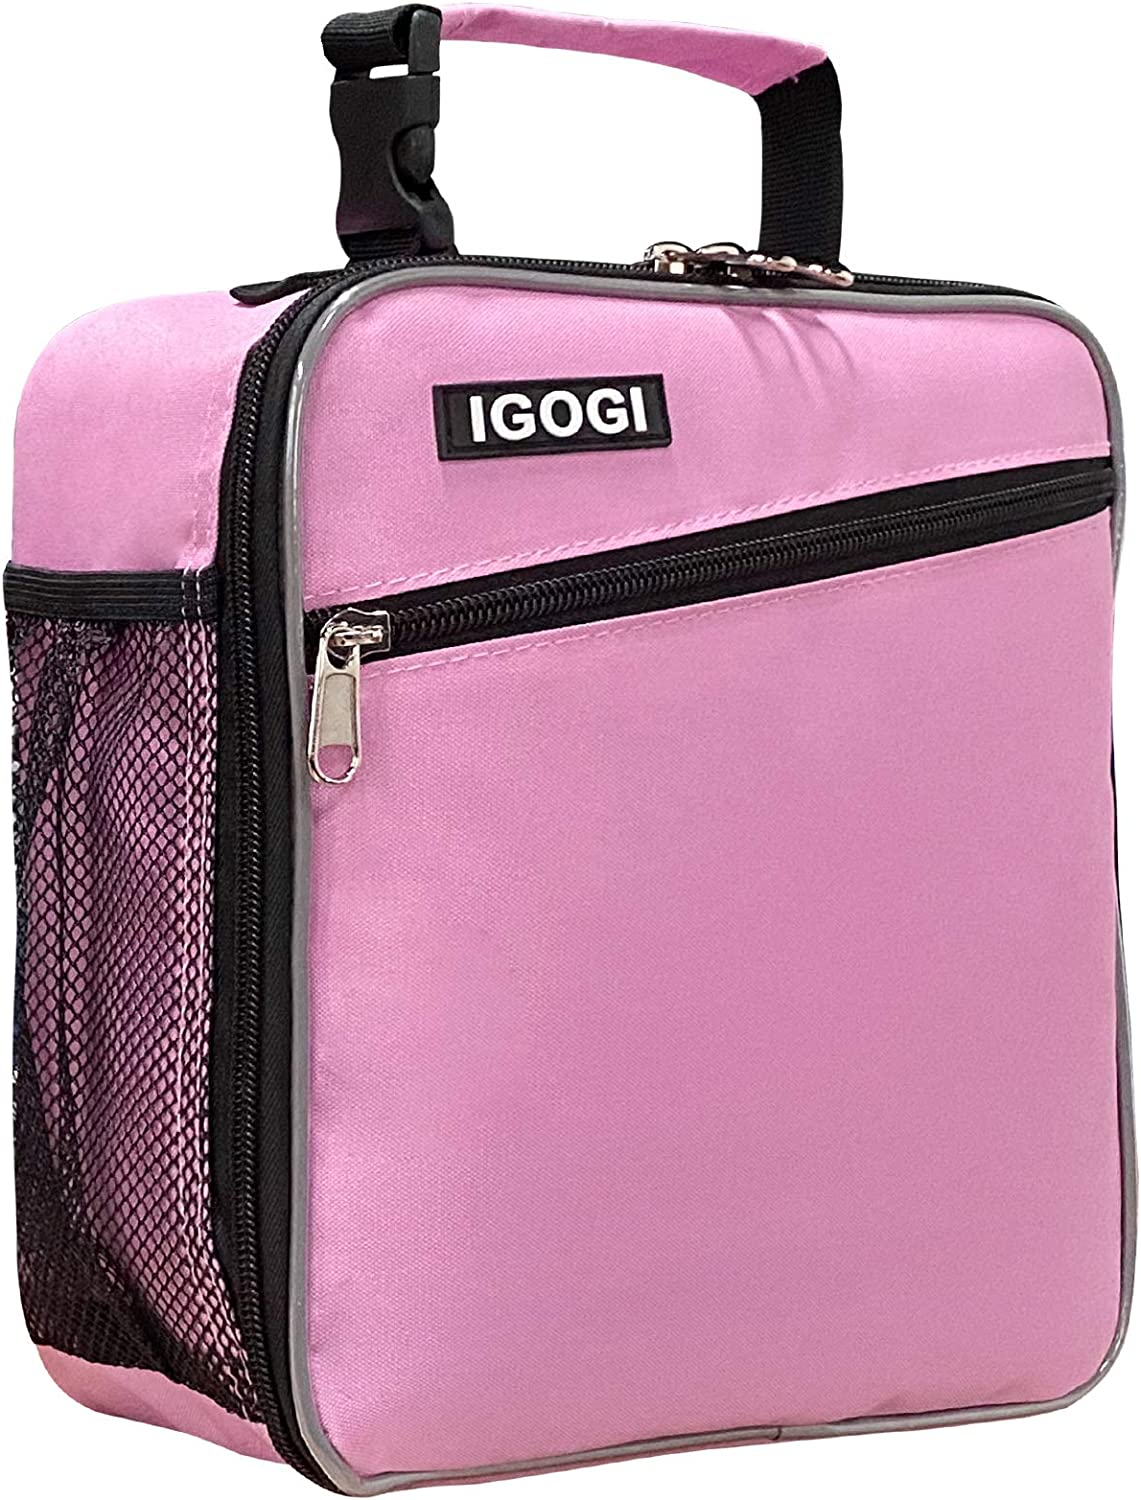 Insulated Lunch Box for Men, Women, Compact Adult Lunch Pail Work Office Cooler, Soft, Leakproof, Fashion. Suit to men, women,work,office,beach (Pink)